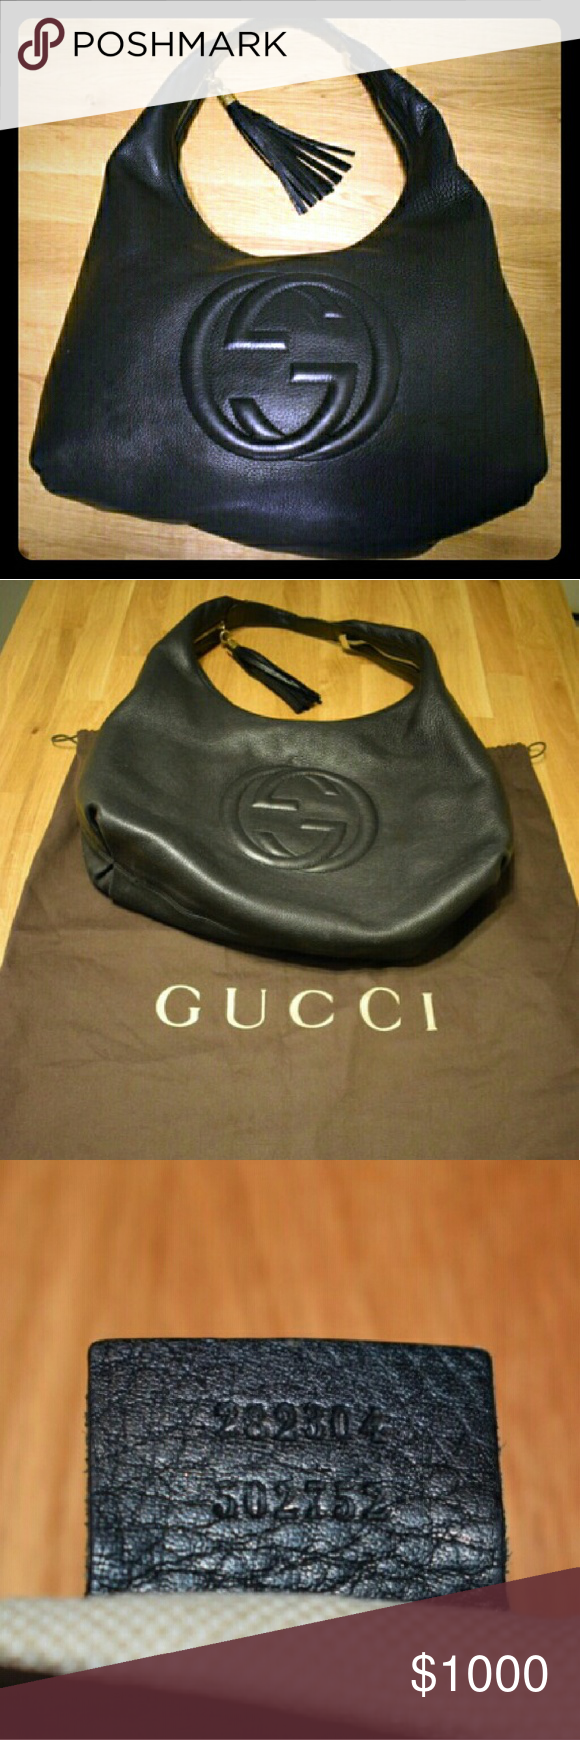 GUCCI Pebbled Leather Soho Hobo Bag This gorgeous black pebbled calfskin leather soho hobo bag features the iconic bold GG logo embroidered in the front. The bag is made of supple & soft black leather w/ gold tone hardware & black leather tassel.  Retail price is $2,090. The exterior leather is clean and beautiful throughout with signs of wear around the hardwear of the tassel and the strap has softened from gentle use. The interior lining has soiling at the base & pen markings. Gucci Bags…